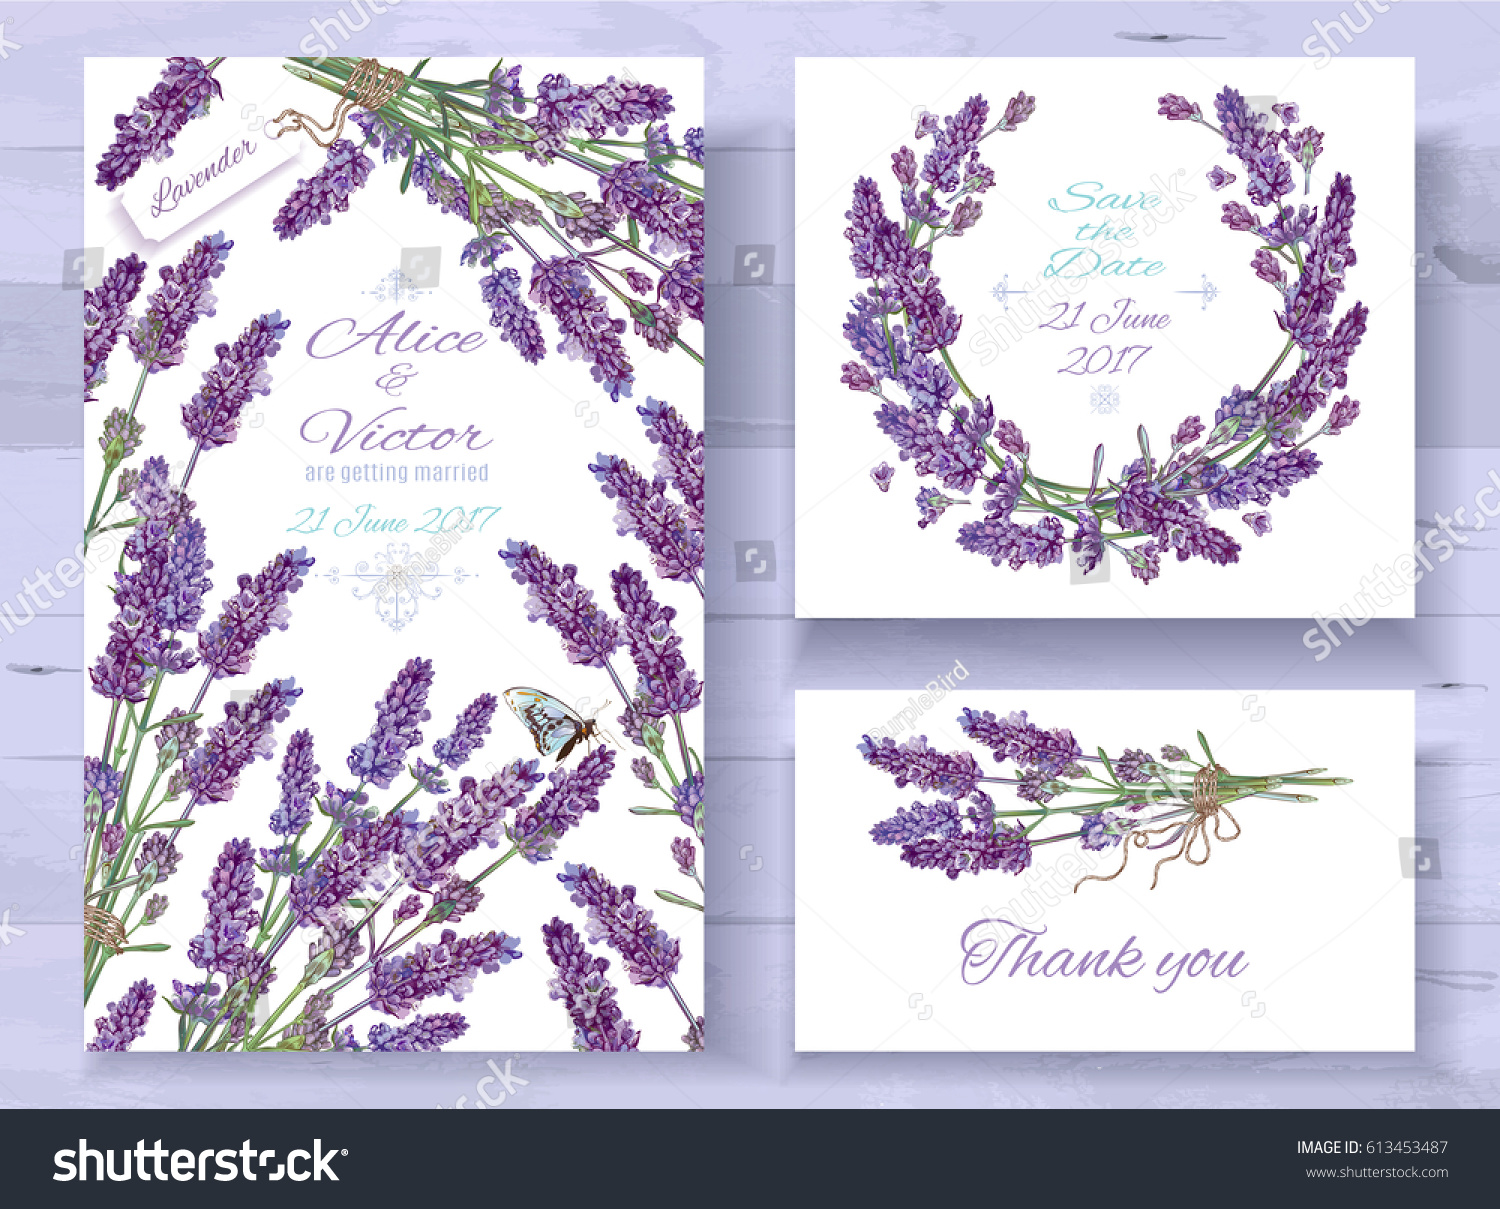 Vector Wedding Invitations Set With Lavender Flowers On White Background Romantic Tender Floral Design For